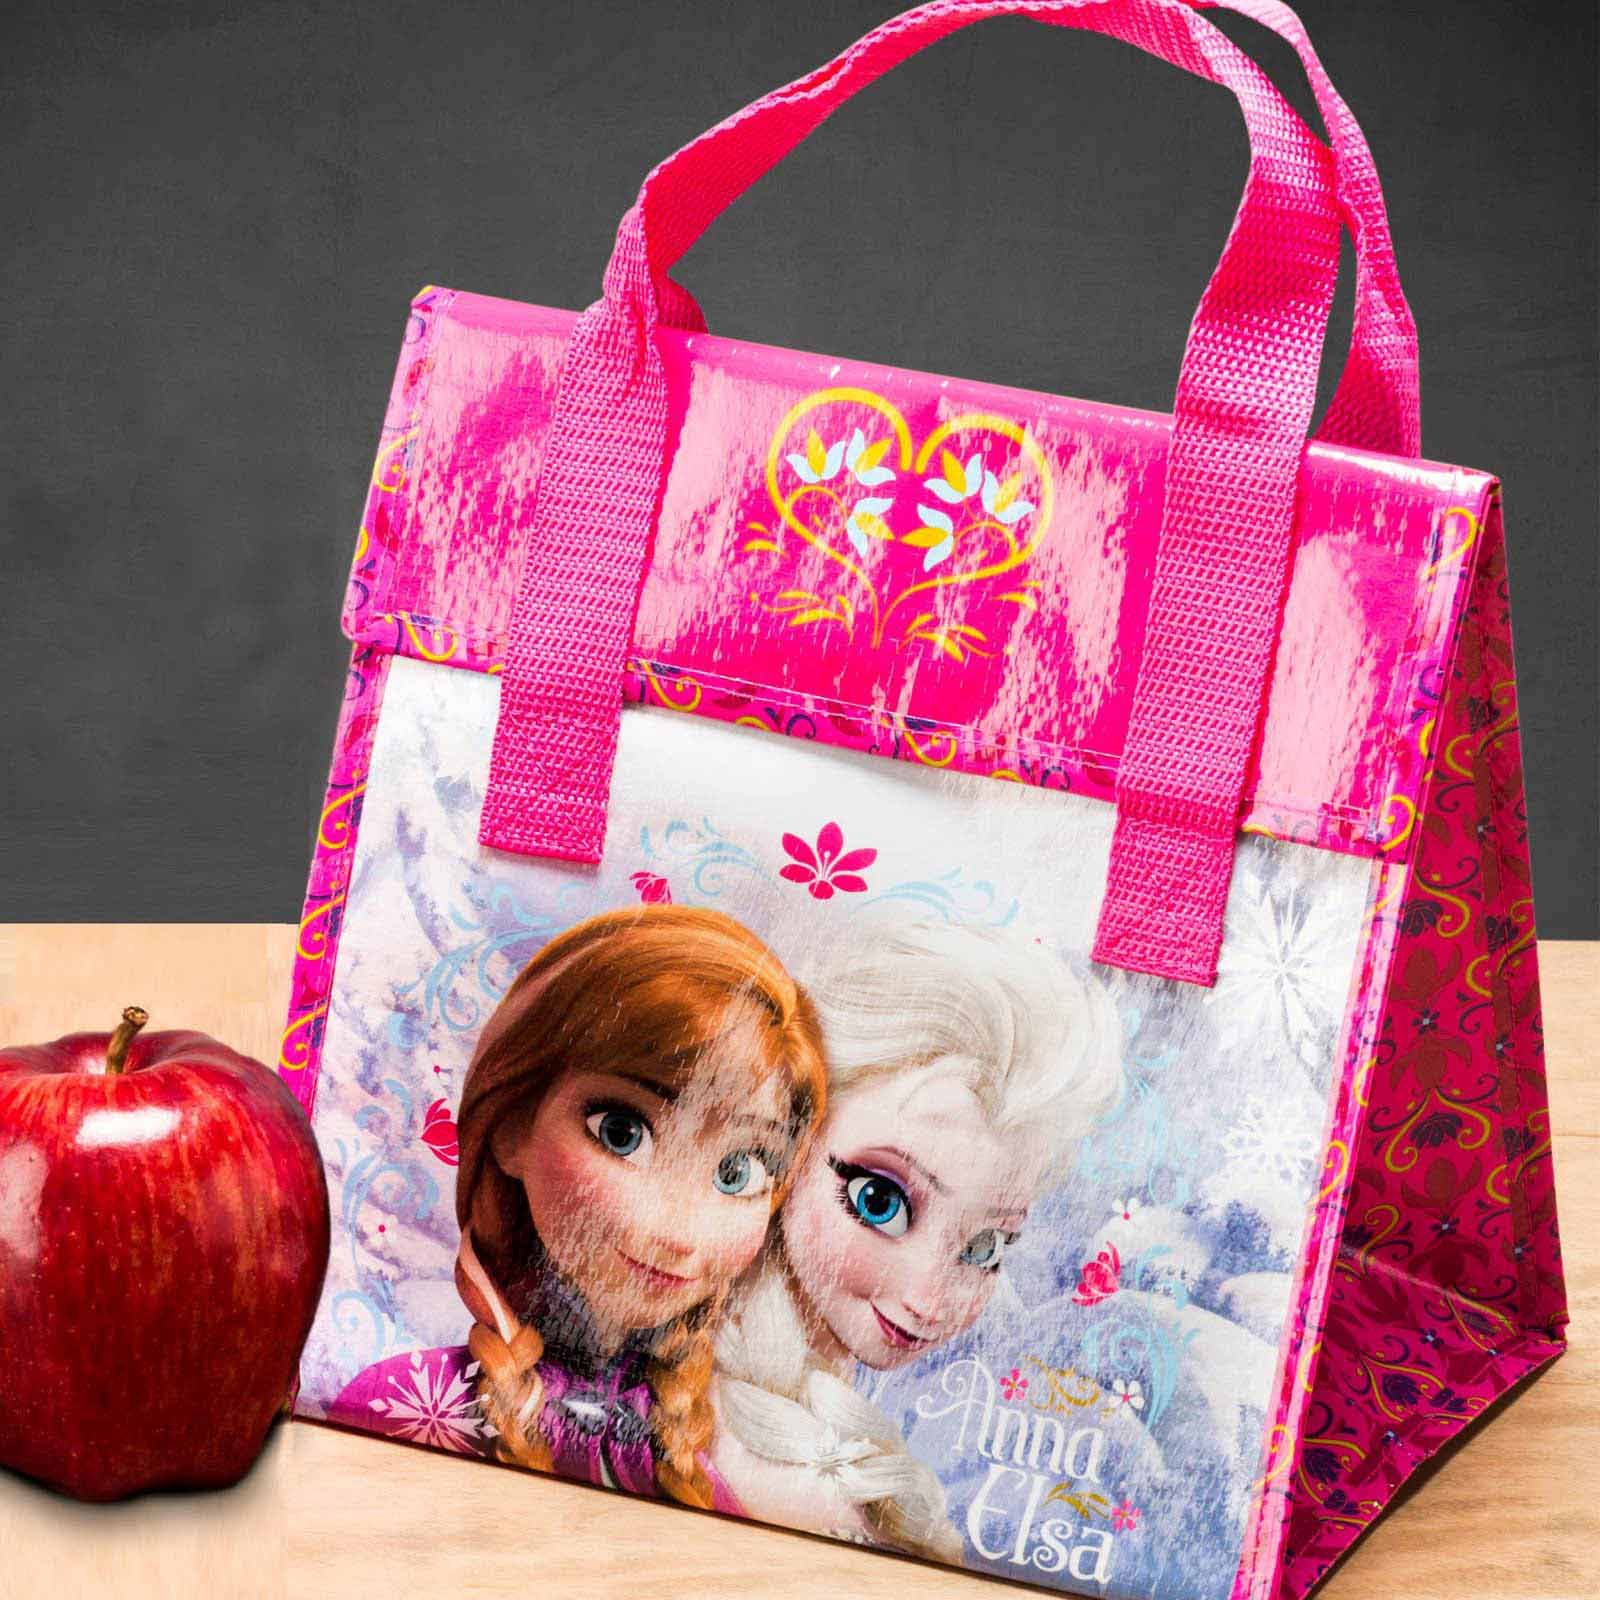 Disney Frozen Insulated Reusable Lunch Bag, Elsa & Anna slideshow image 1